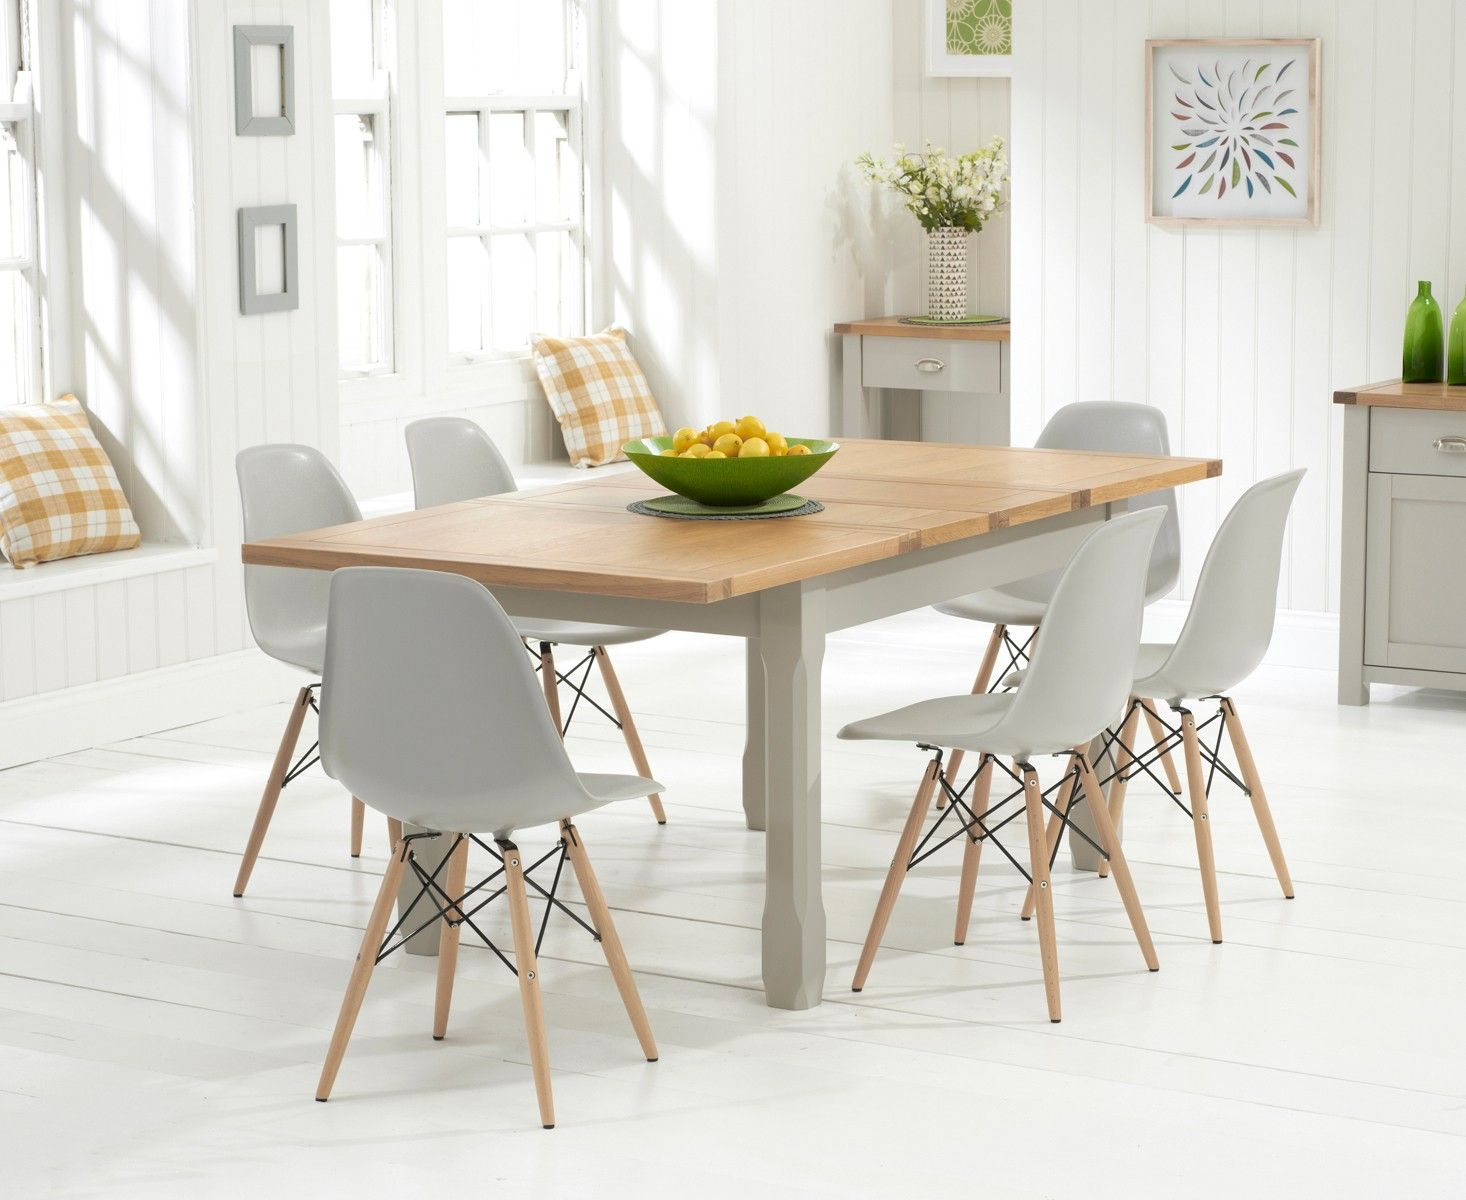 Buy the Somerset 130cm Oak and Grey Extending Dining Table with